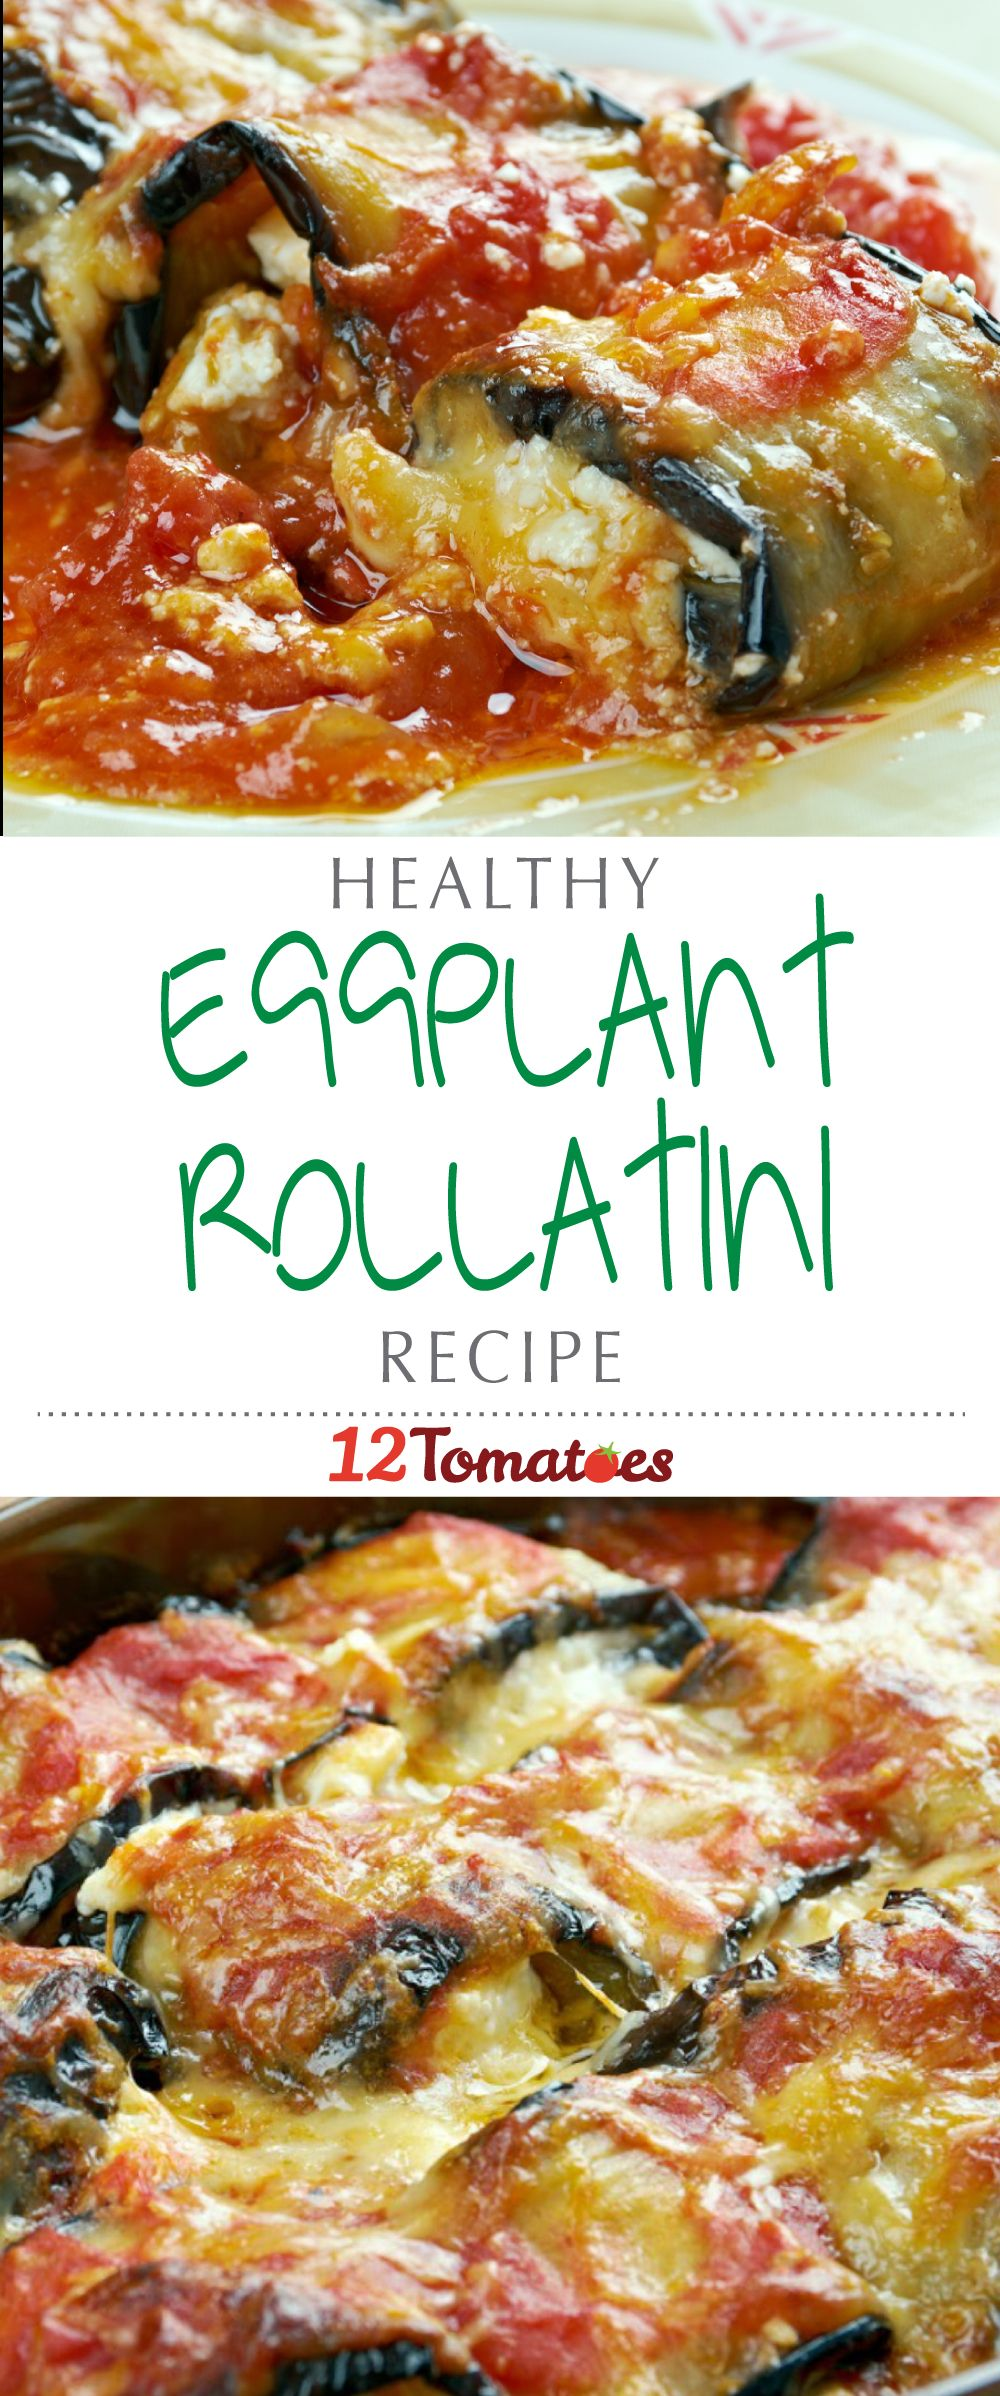 eggplant rollatini recipe recipes dishes vegetarian entrees italian dish delicious healthy looking main 12tomatoes eat vegetable vegan cooking collect later